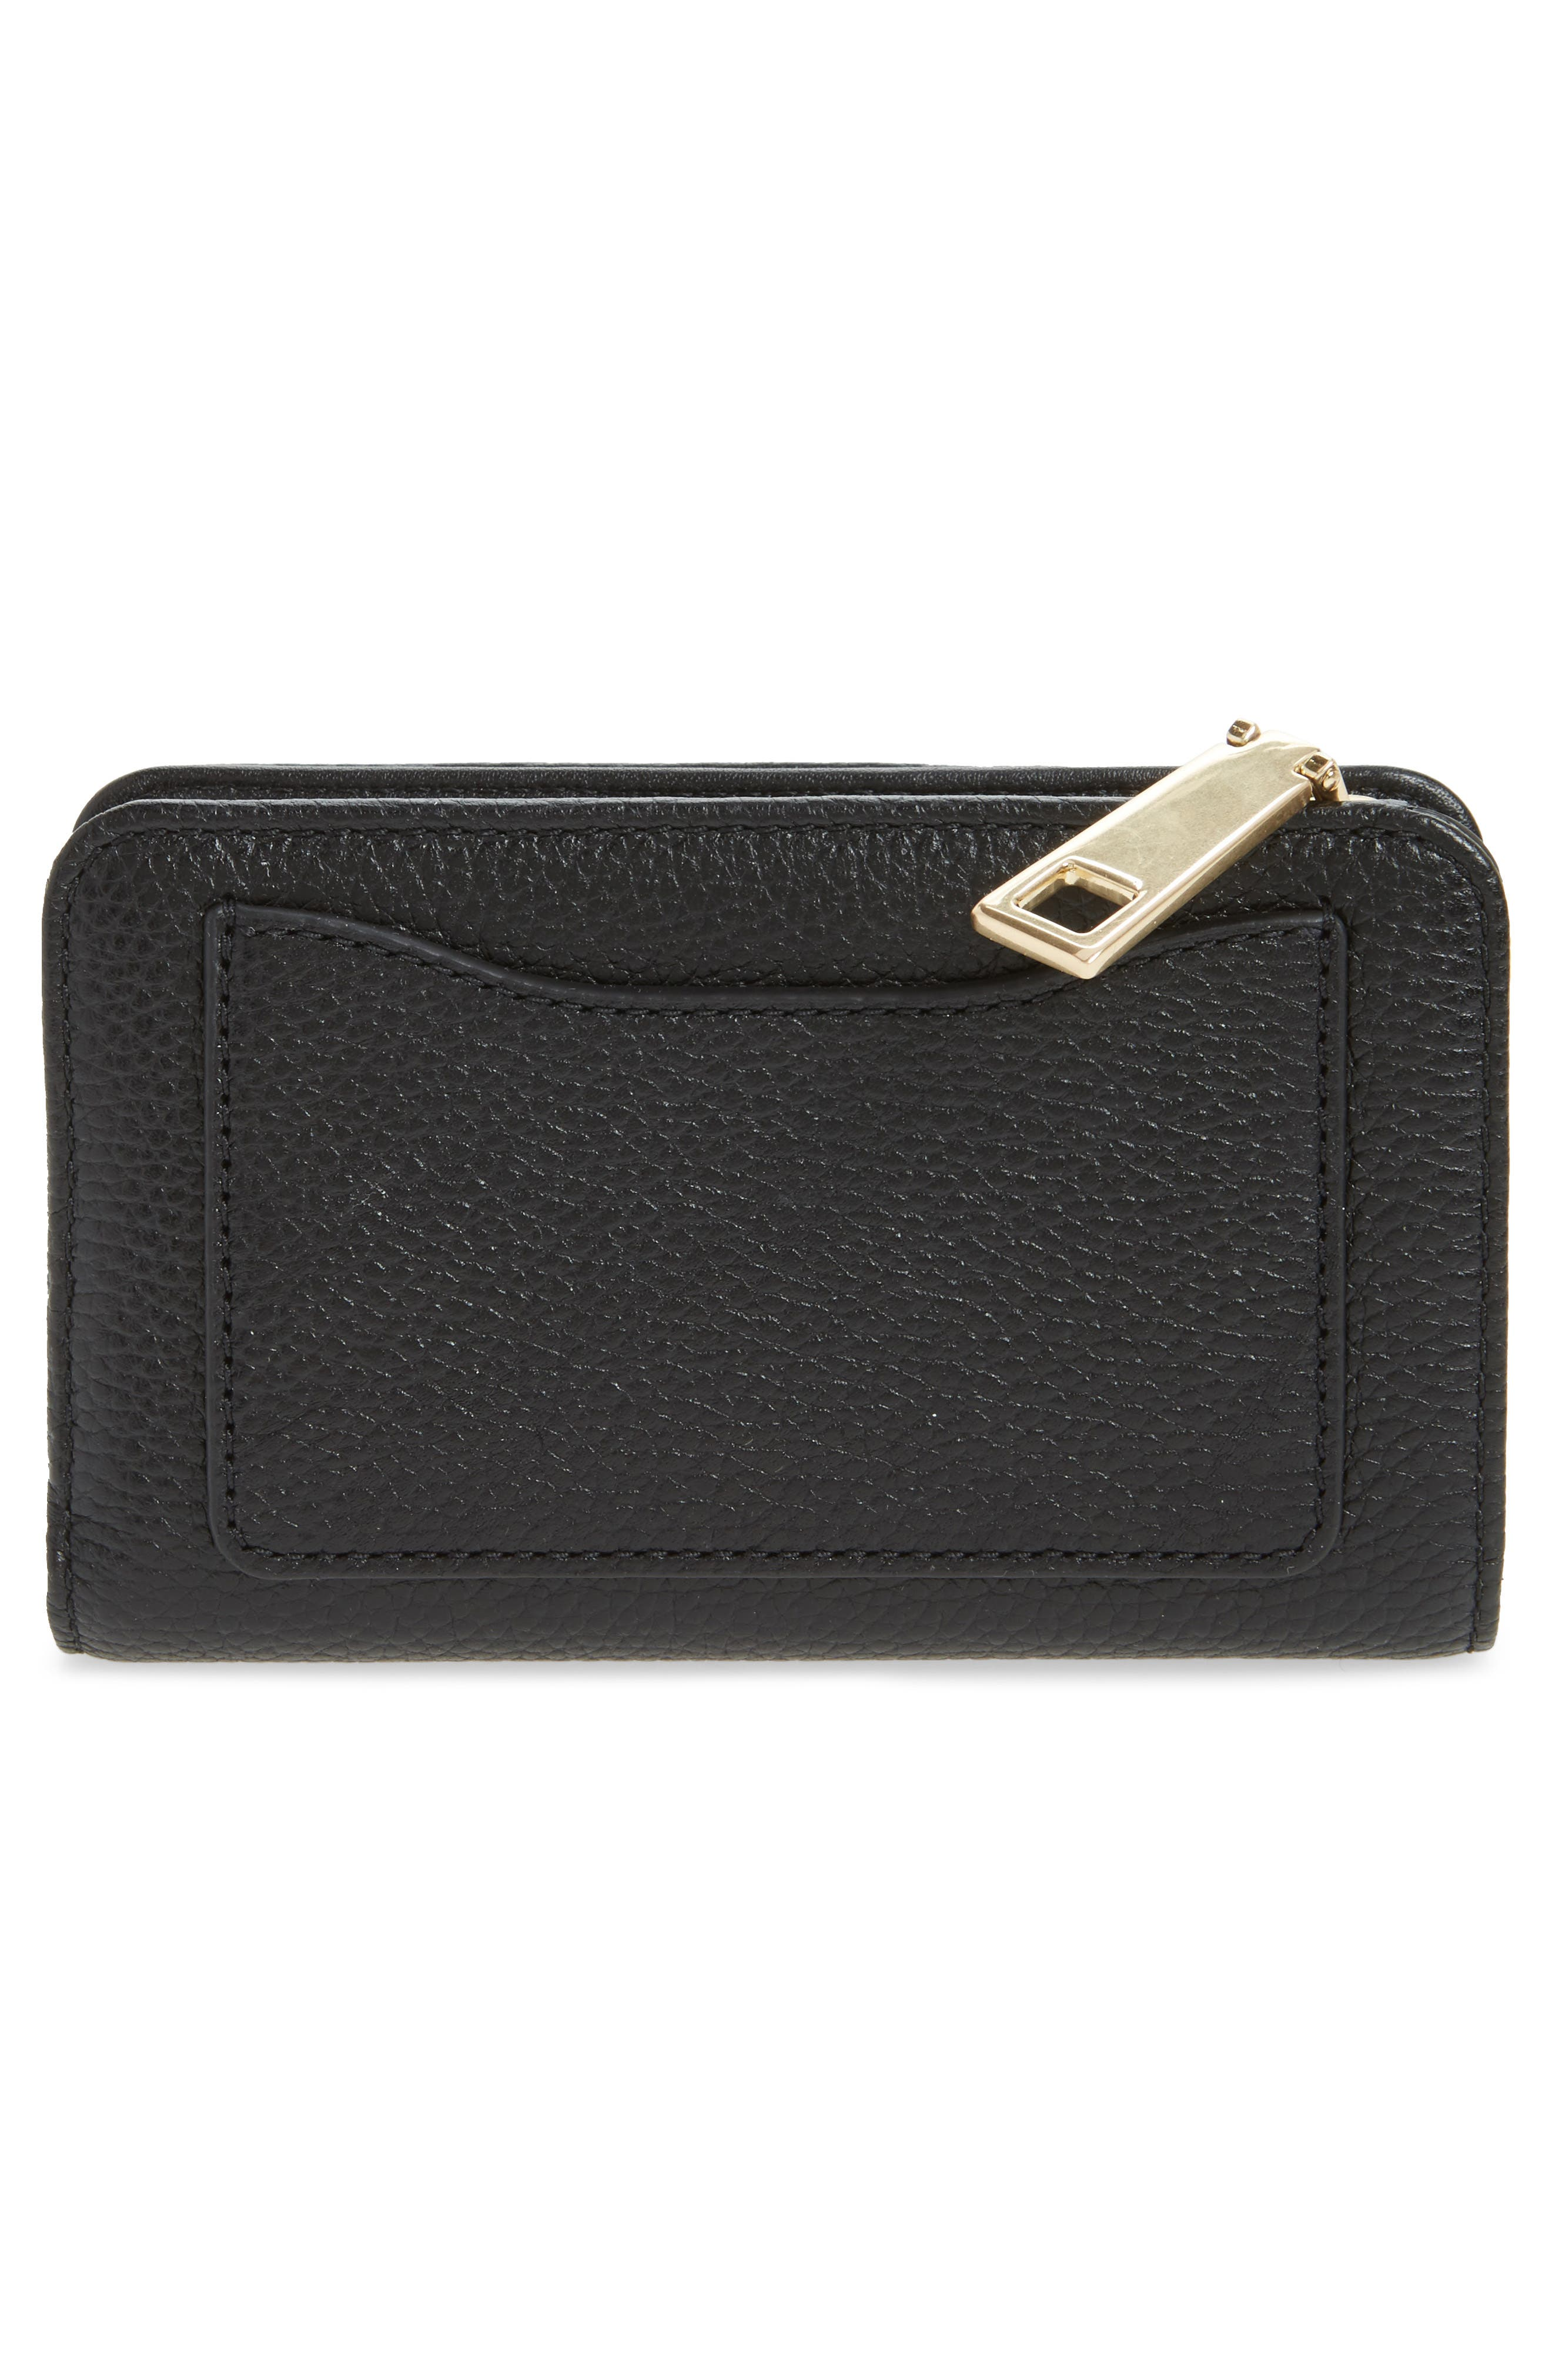 Gotham Compact Leather Wallet,                             Alternate thumbnail 3, color,                             002